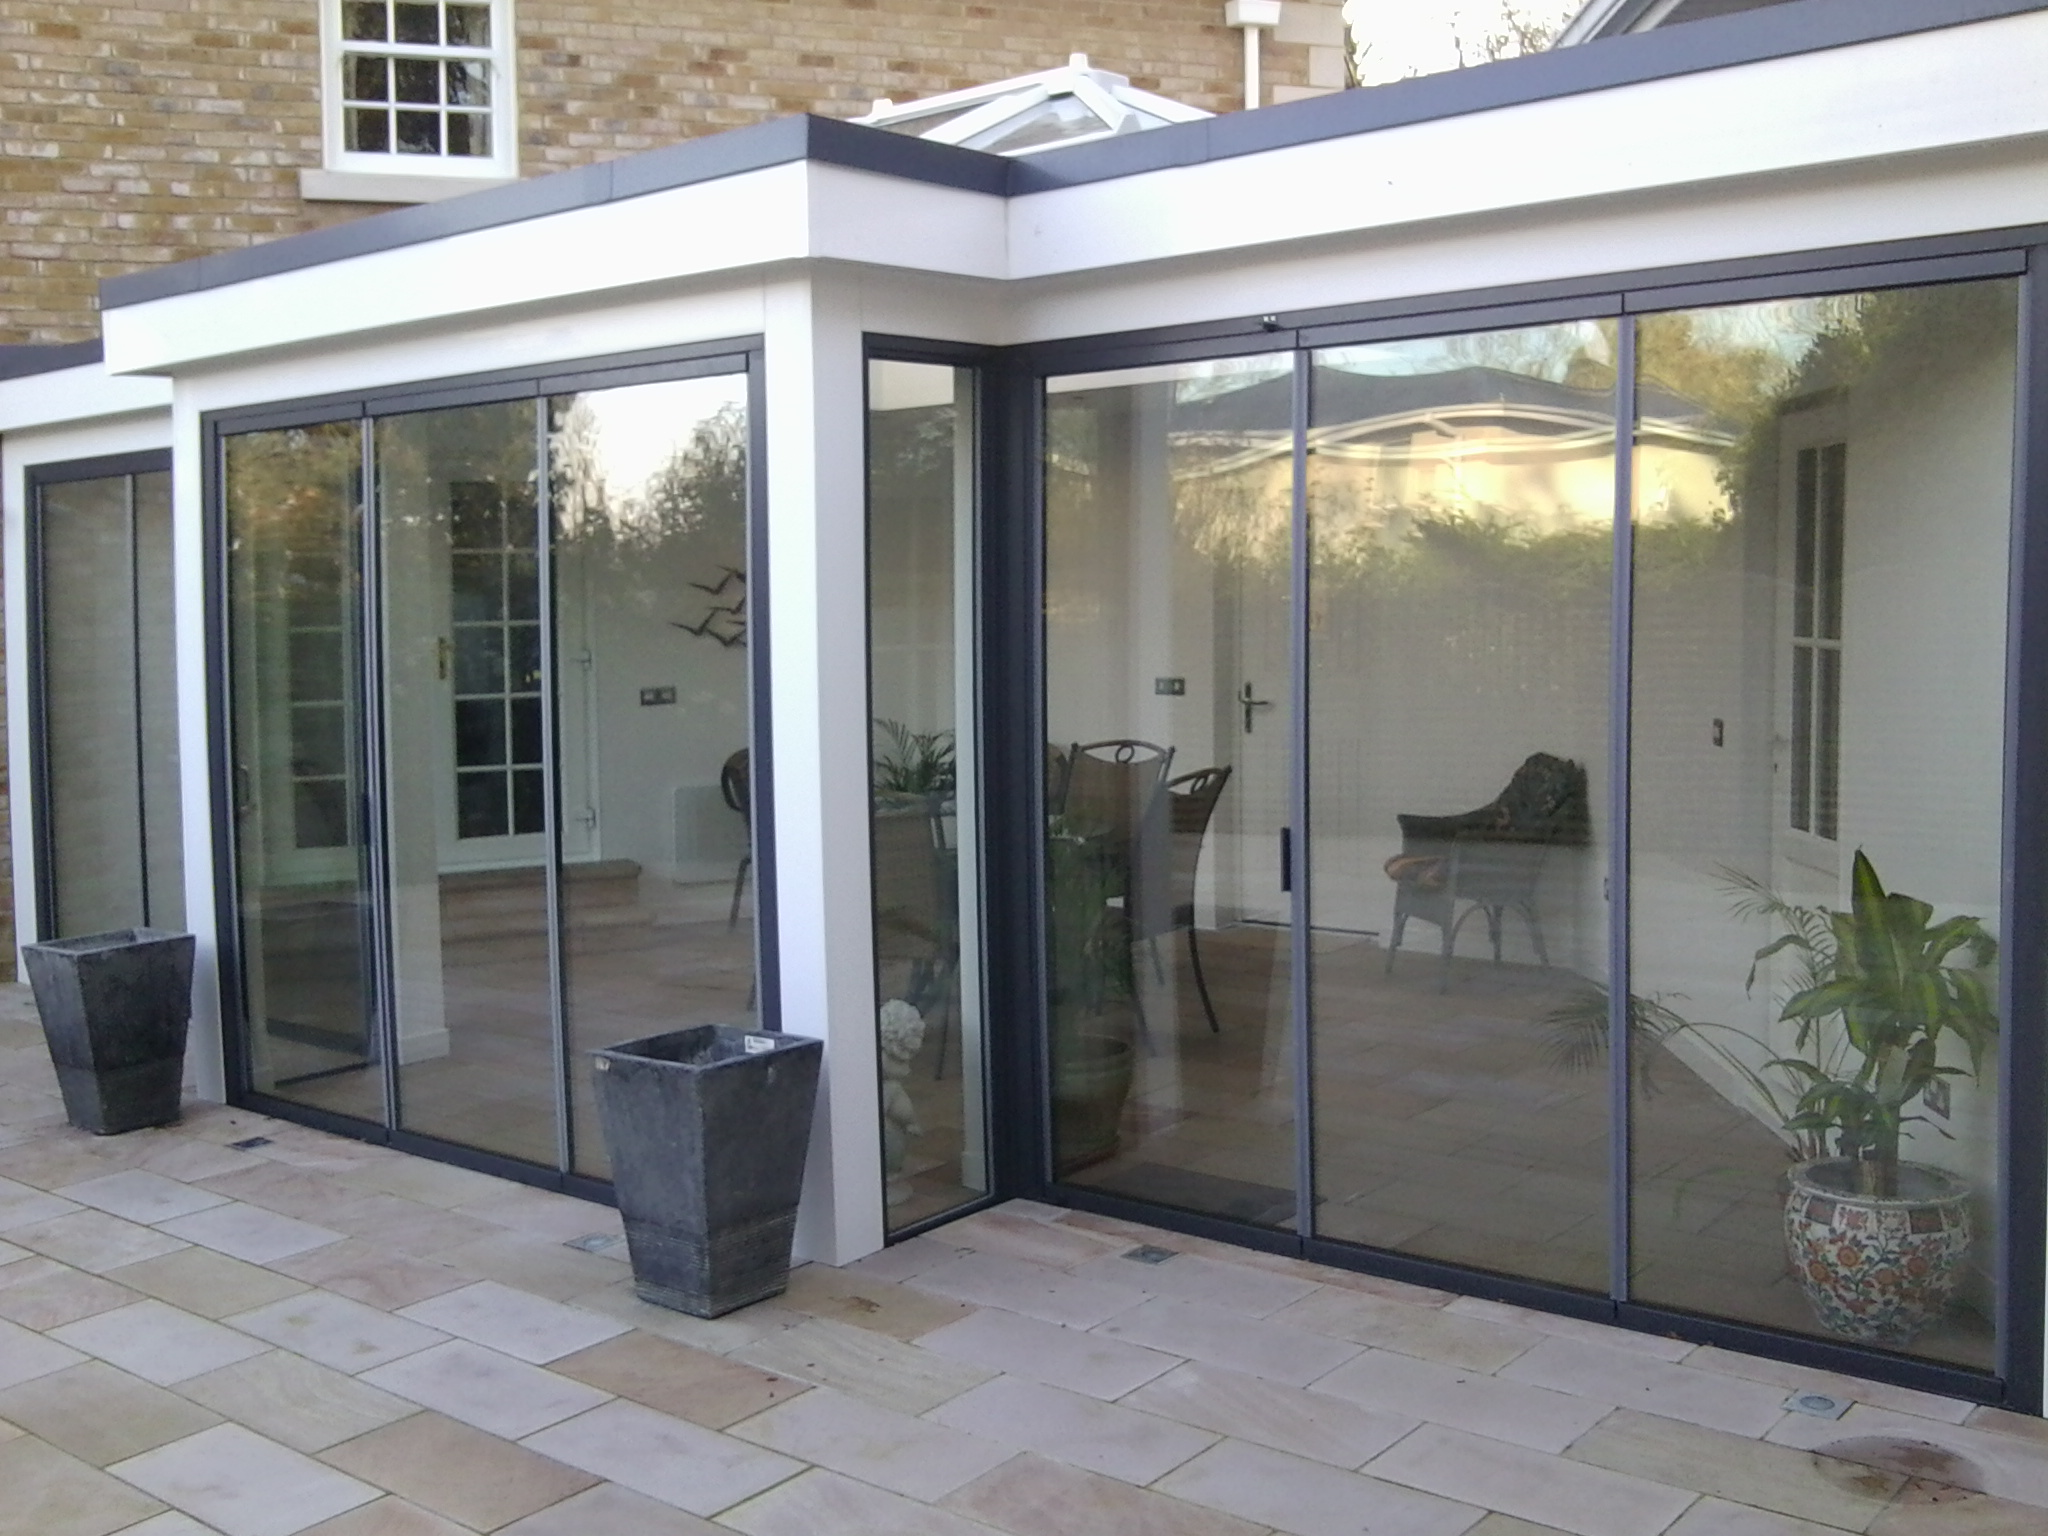 Ultraslim Slide And Turnpivotswing Glass Doors From Sightline Doors